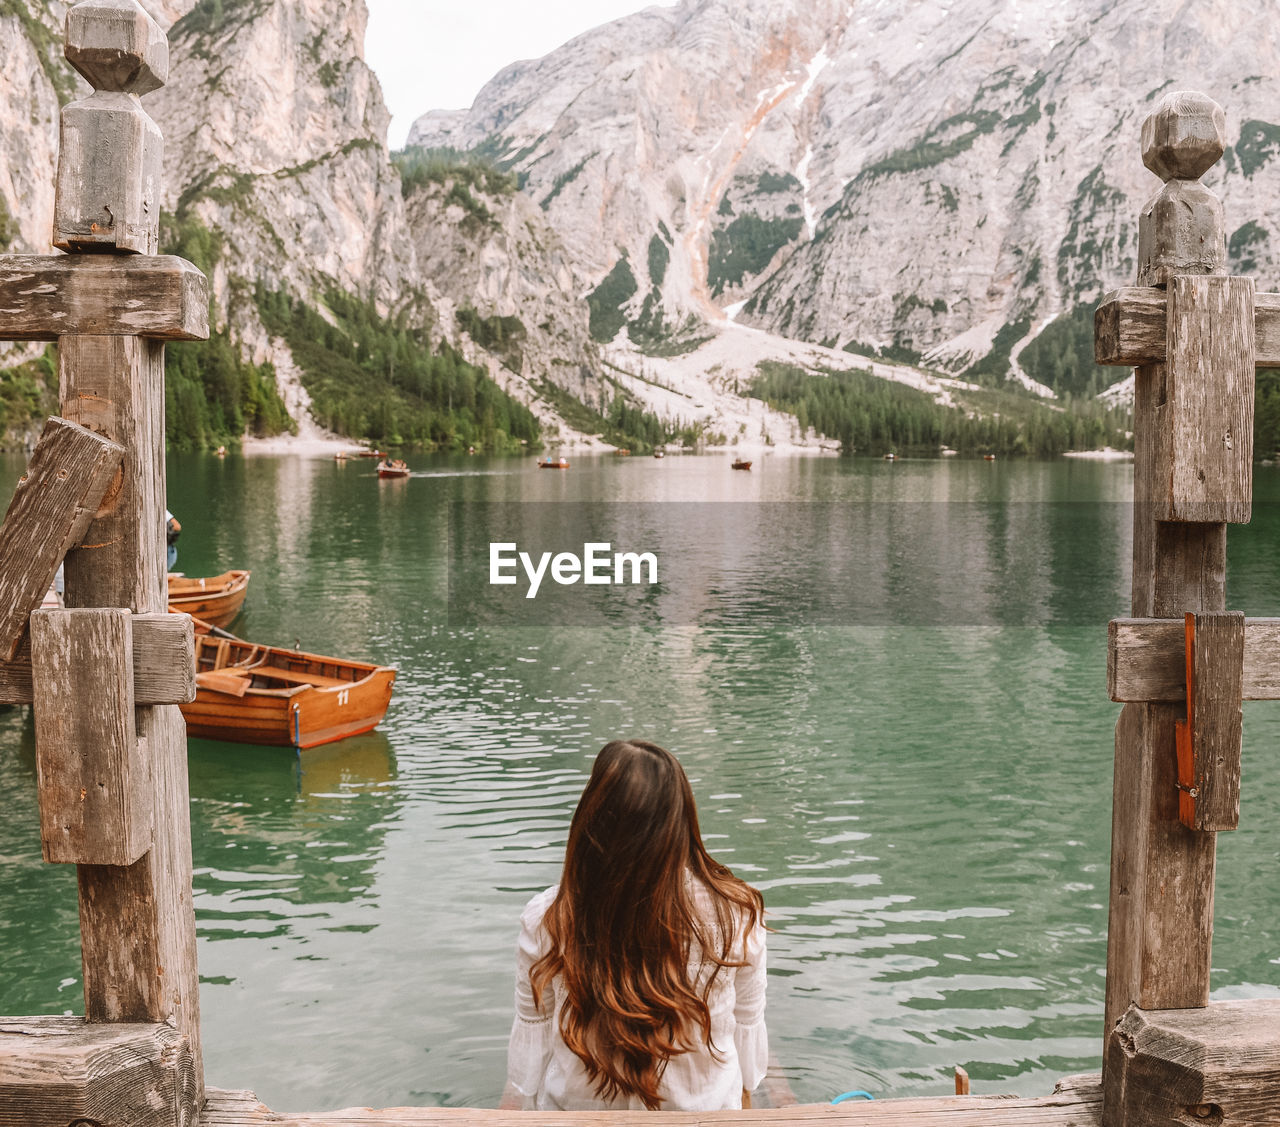 mountain, water, one person, women, lifestyles, real people, scenics - nature, mountain range, beauty in nature, leisure activity, day, rear view, lake, adult, nature, wood - material, tranquility, tranquil scene, outdoors, formation, hairstyle